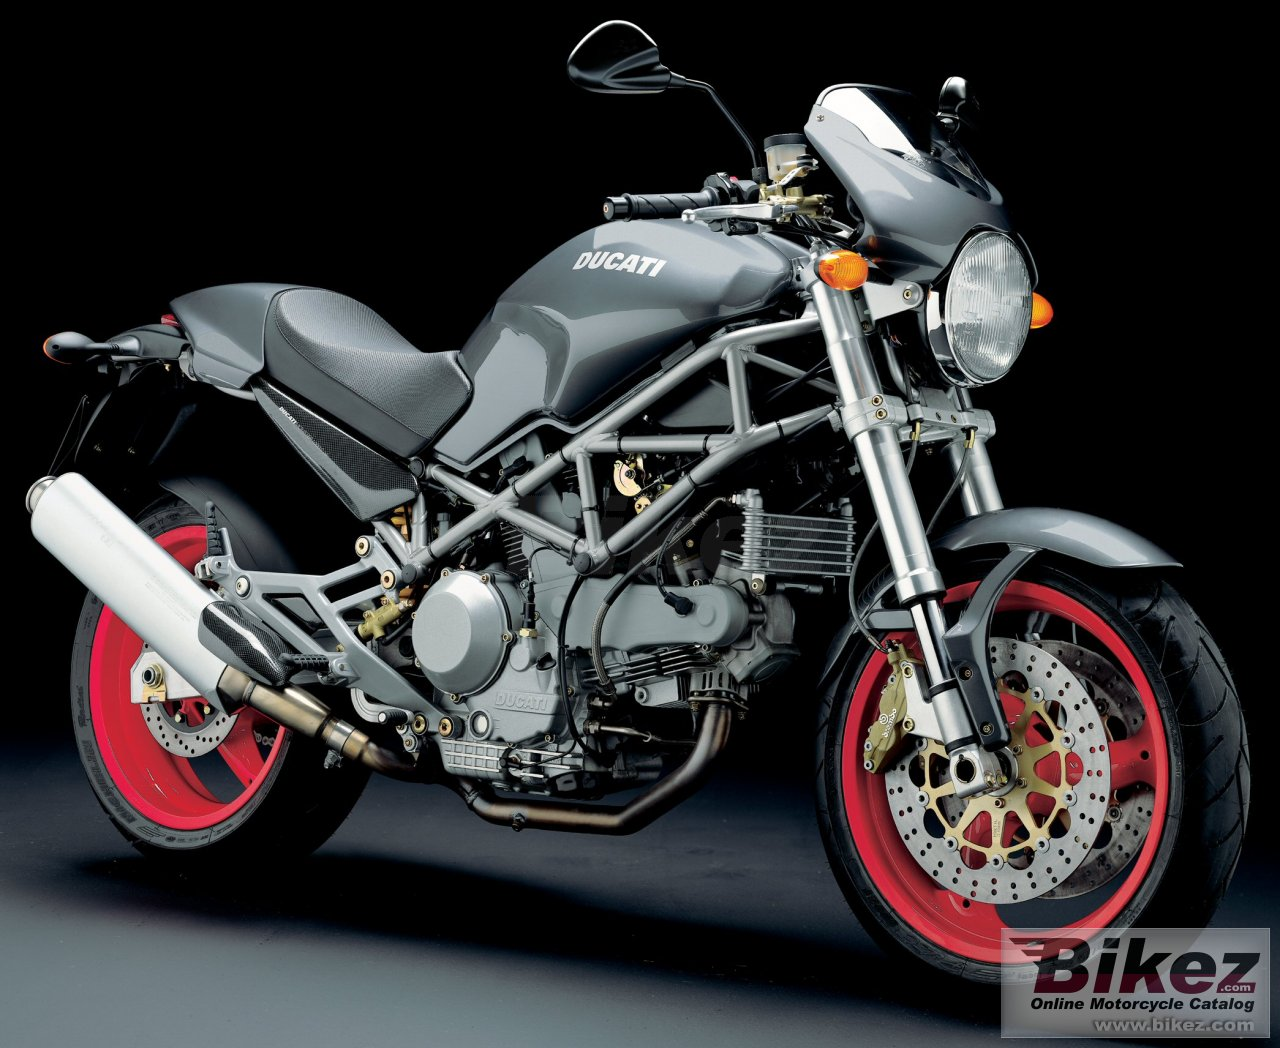 Big Ducati monster 1000 s picture and wallpaper from Bikez.com